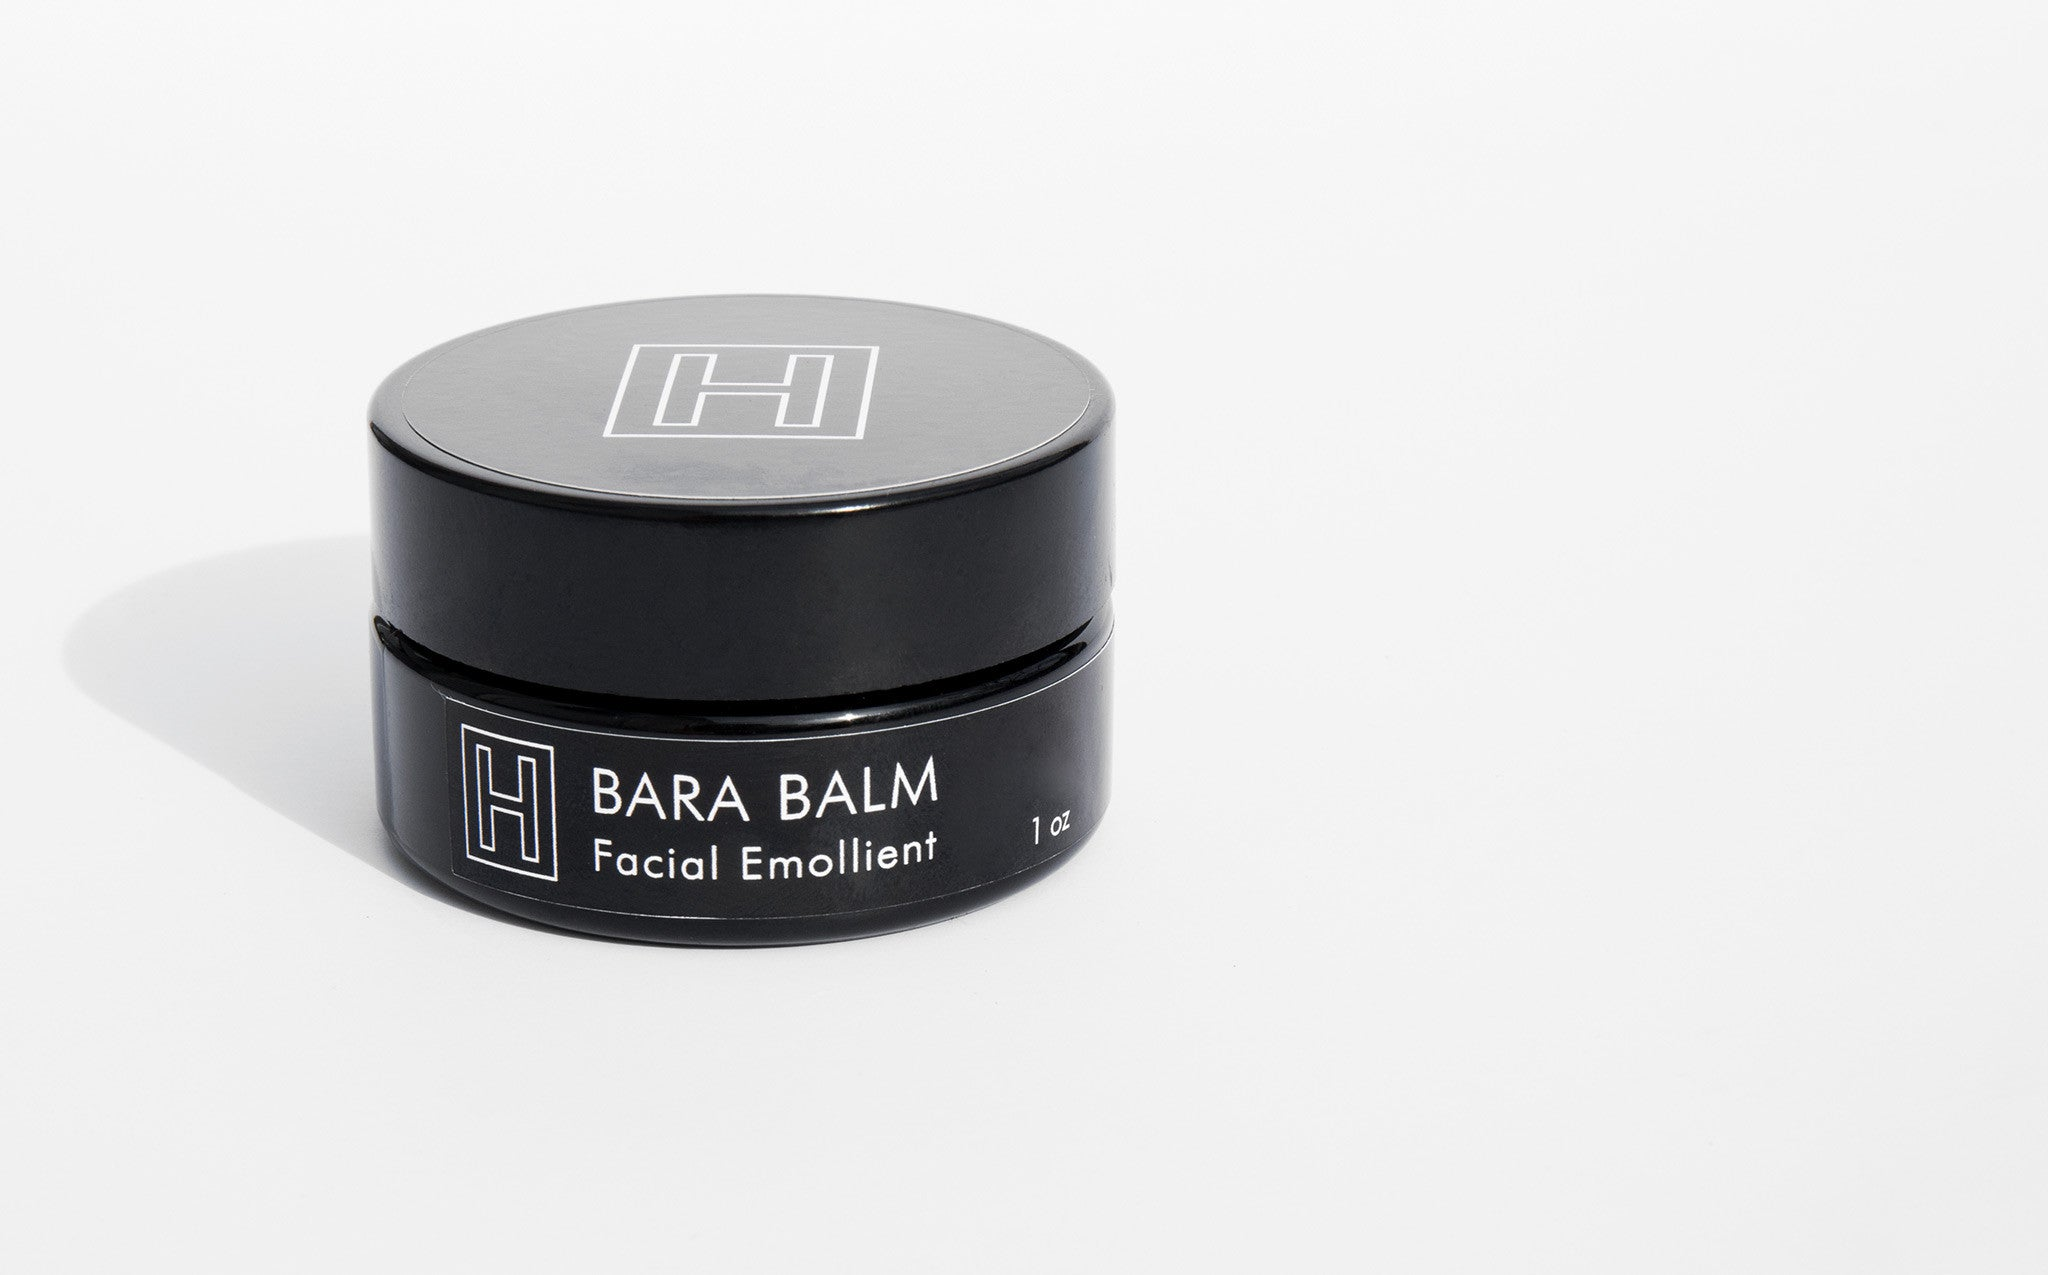 H is for Love Bara Balm Facial Emollient